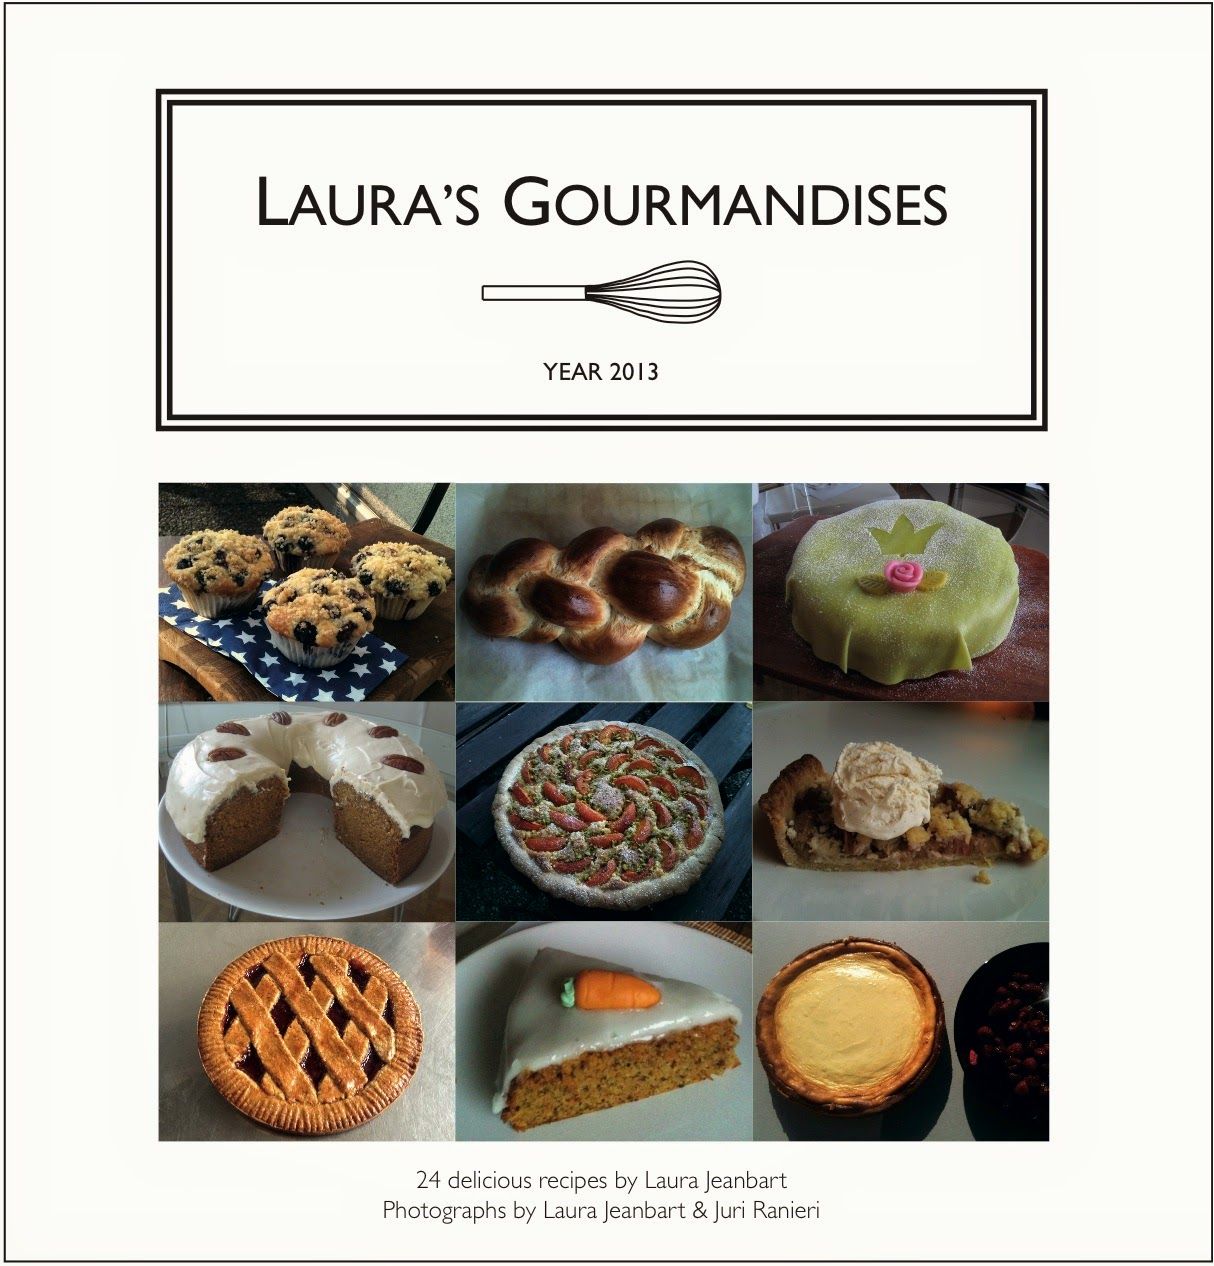 http://www.amazon.com/Lauras-Gourmandises-Laura-Jeanbart/dp/1500889717/ref=sr_1_1?ie=UTF8&qid=1427561494&sr=8-1&keywords=laura+jeanbart